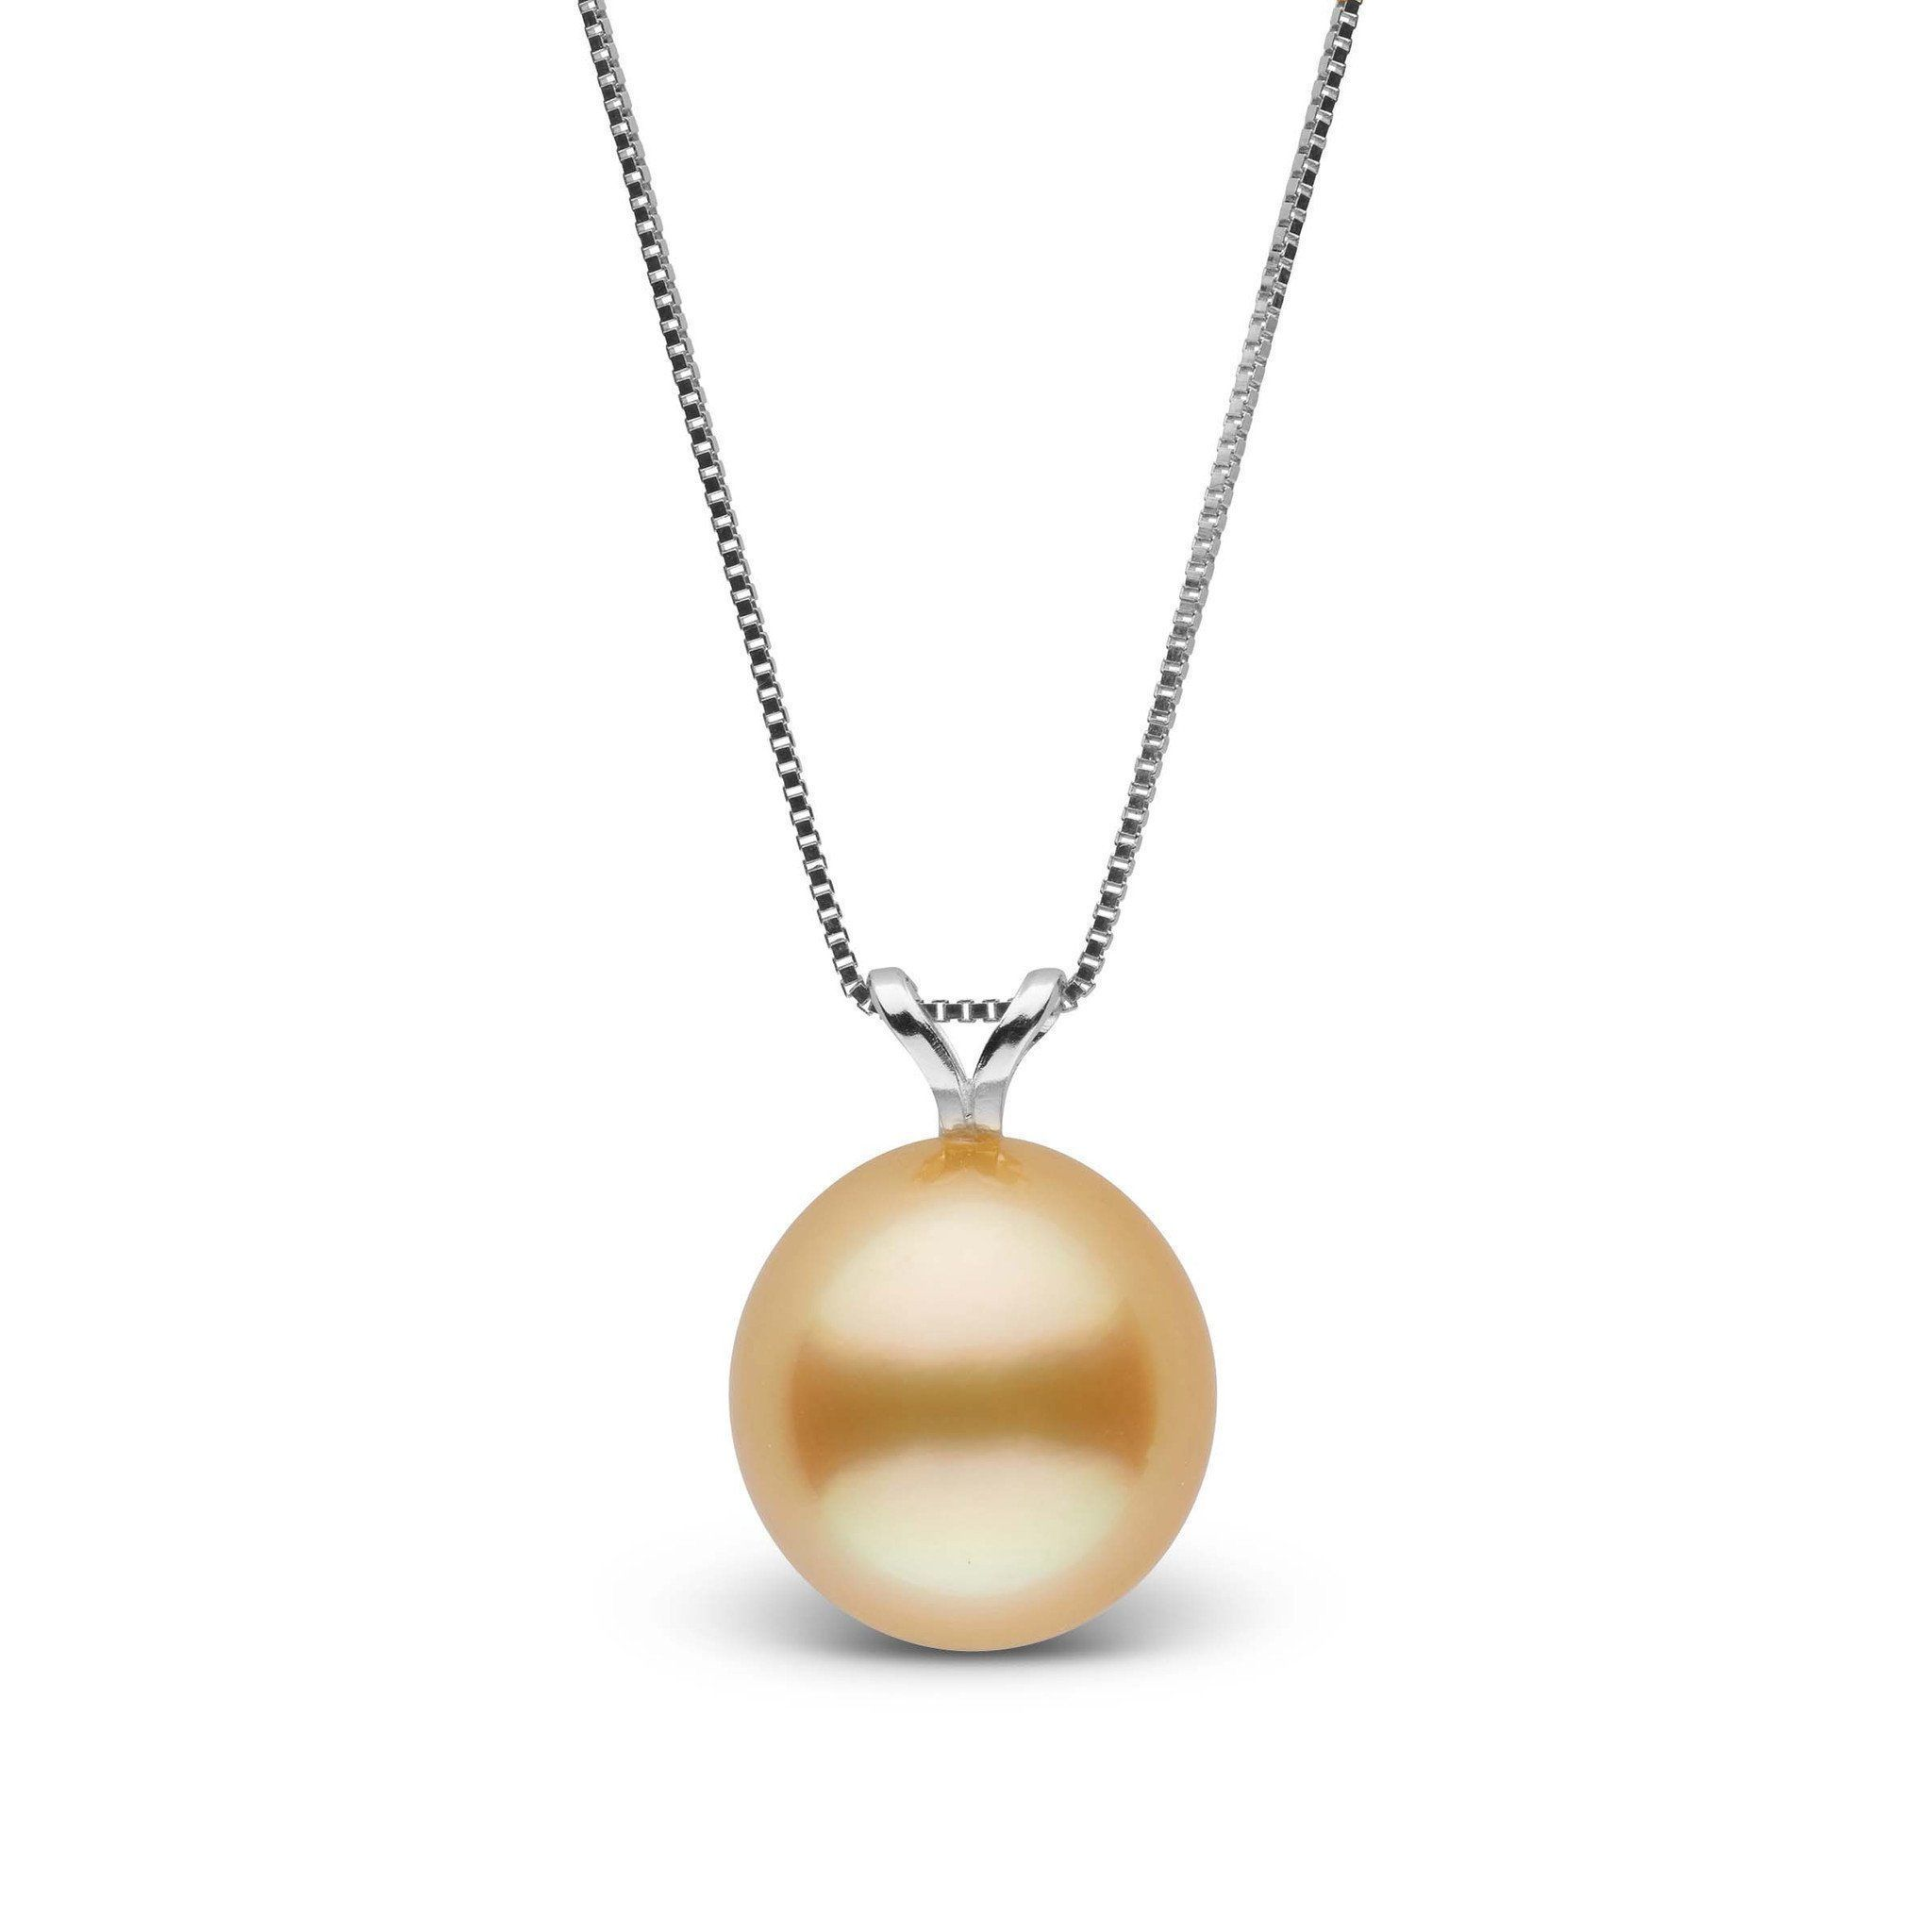 Unity Collection Drop Golden 9.0-10.0 mm South Sea Pearl Pendant